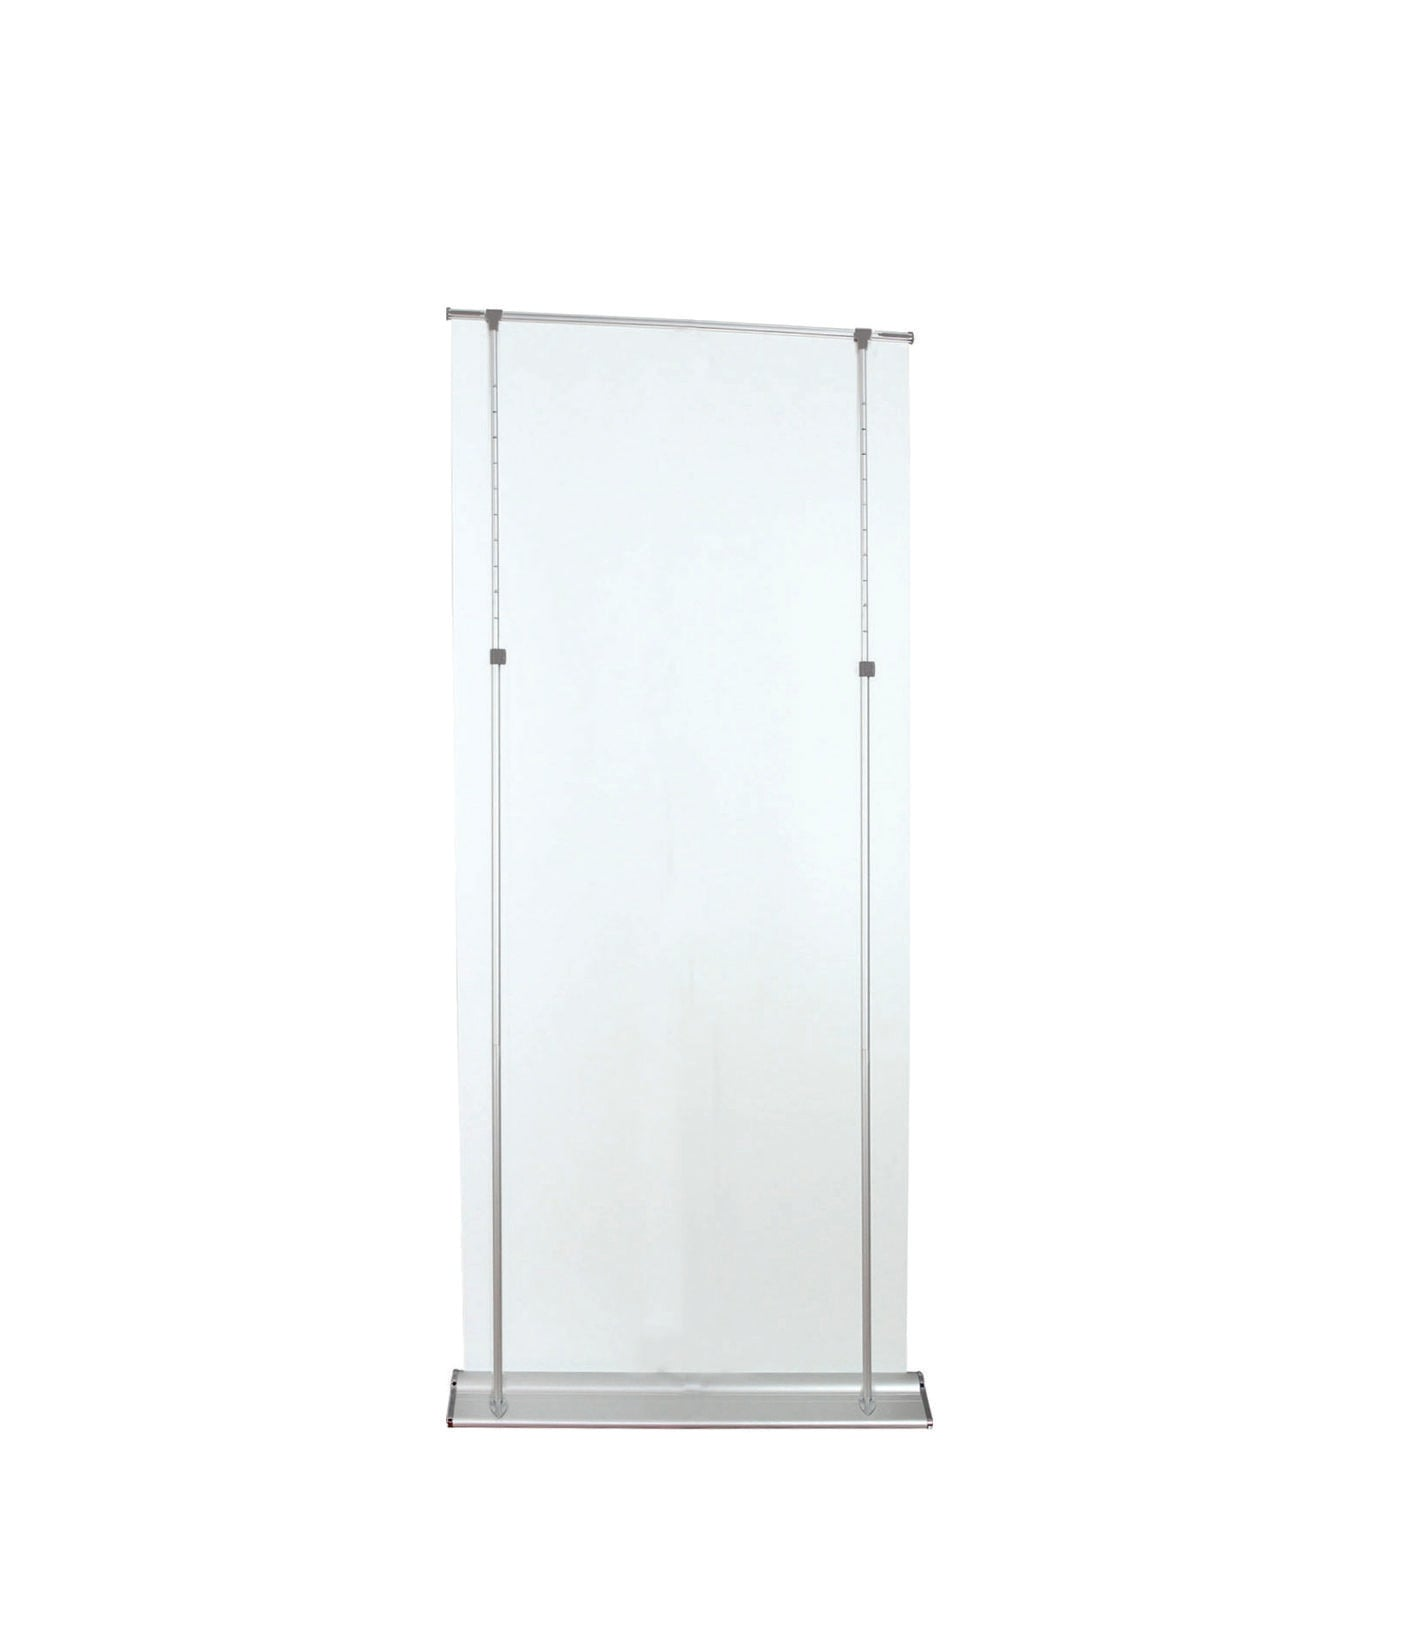 Retractable Divider Wall